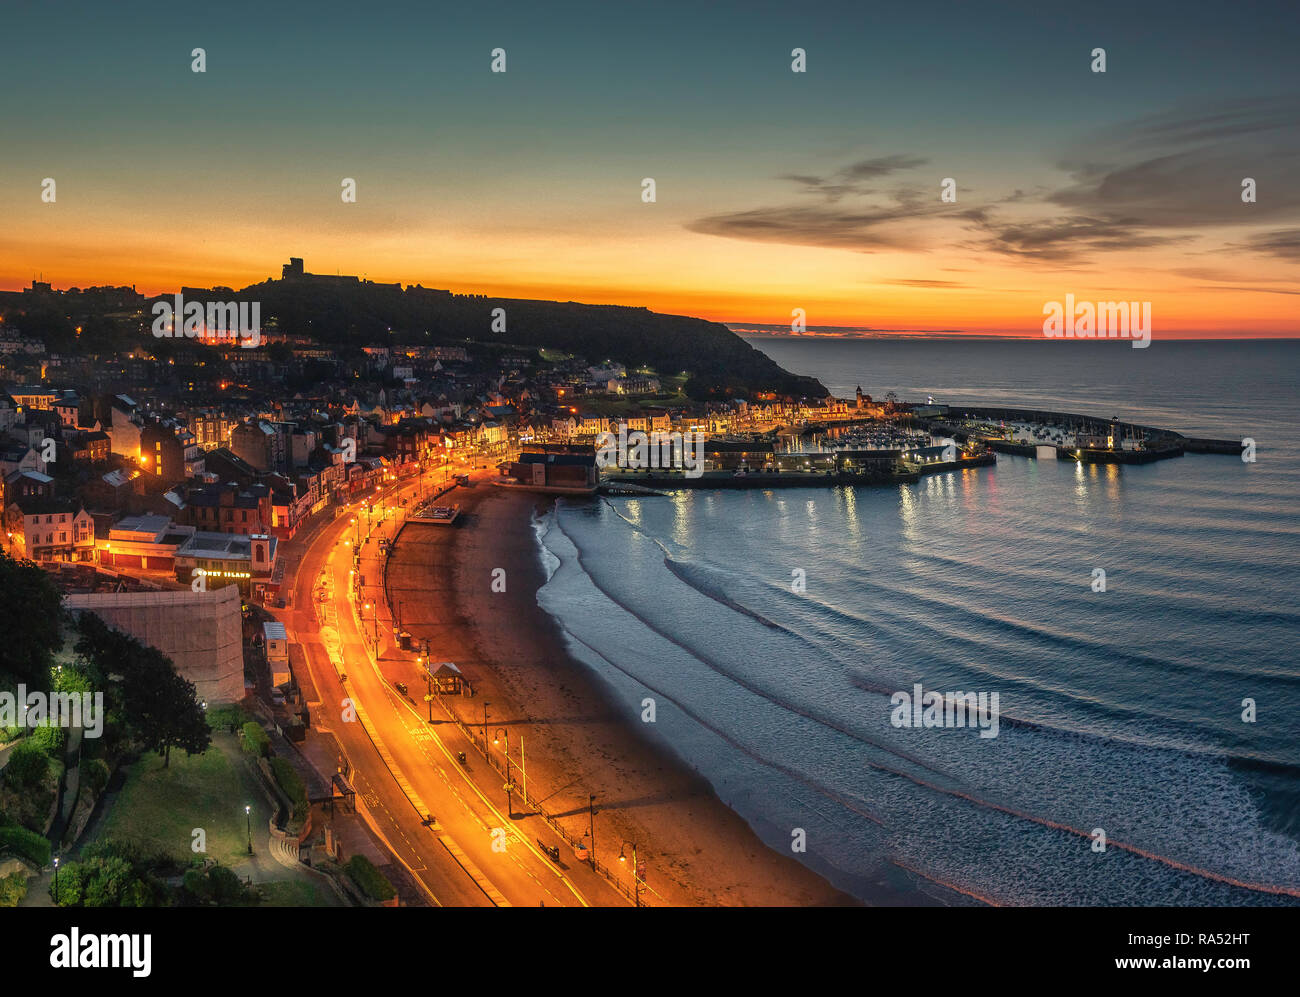 Scarborough by Night - Stock Image